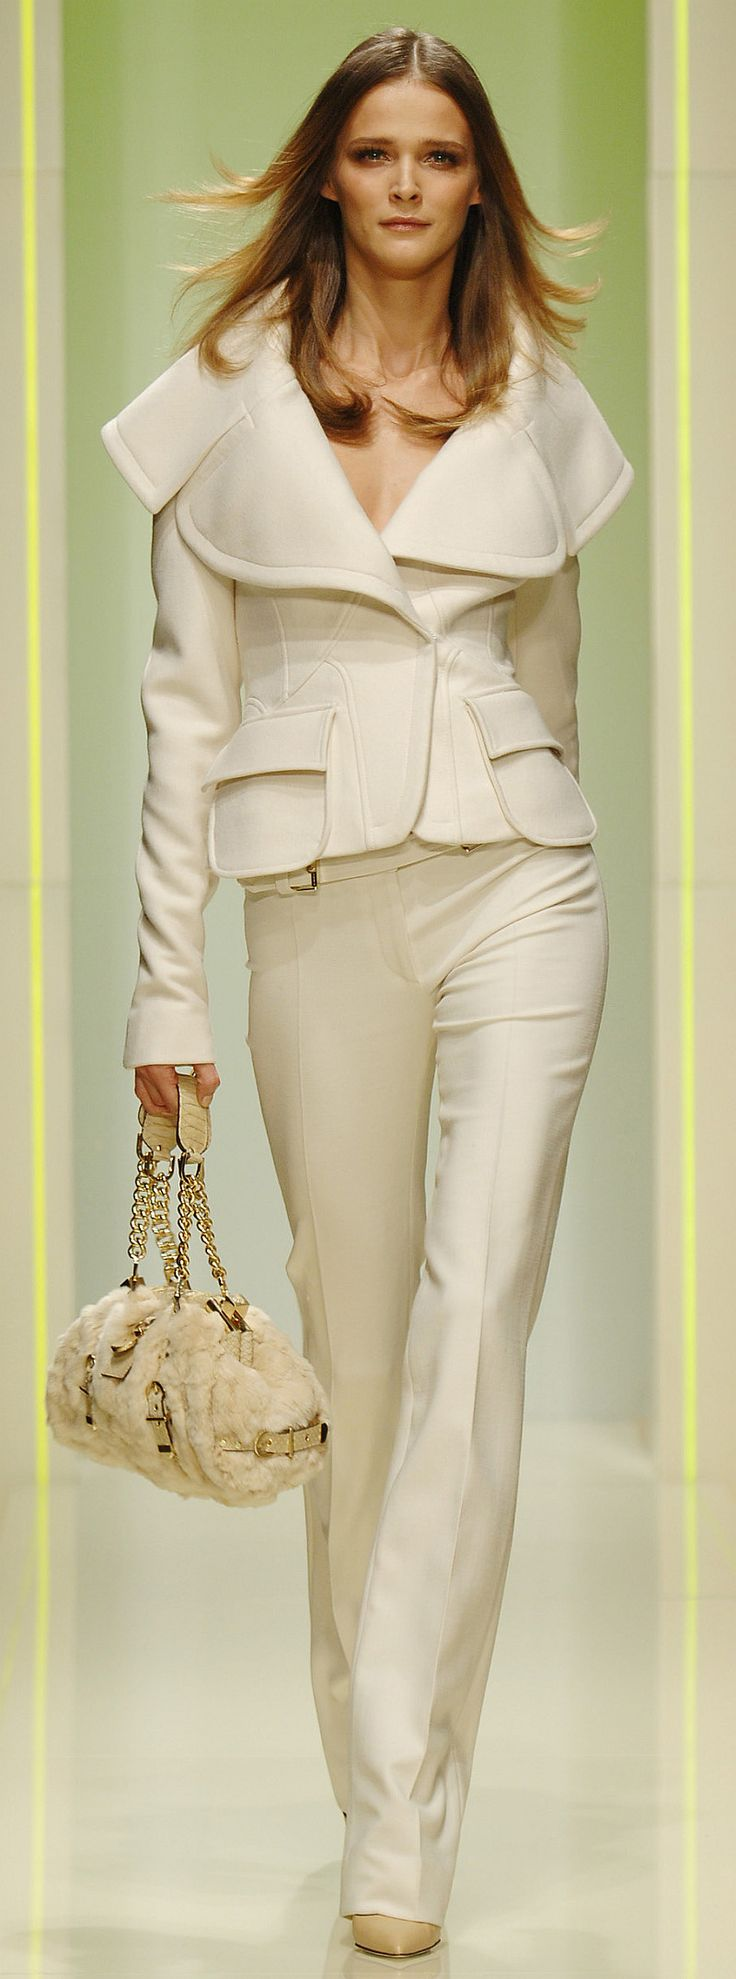 Versace Ready To Wear Autumn 2005 SEE NEW BOARD FASHION # 2- TOO MANY PINS ON THIS BOARD